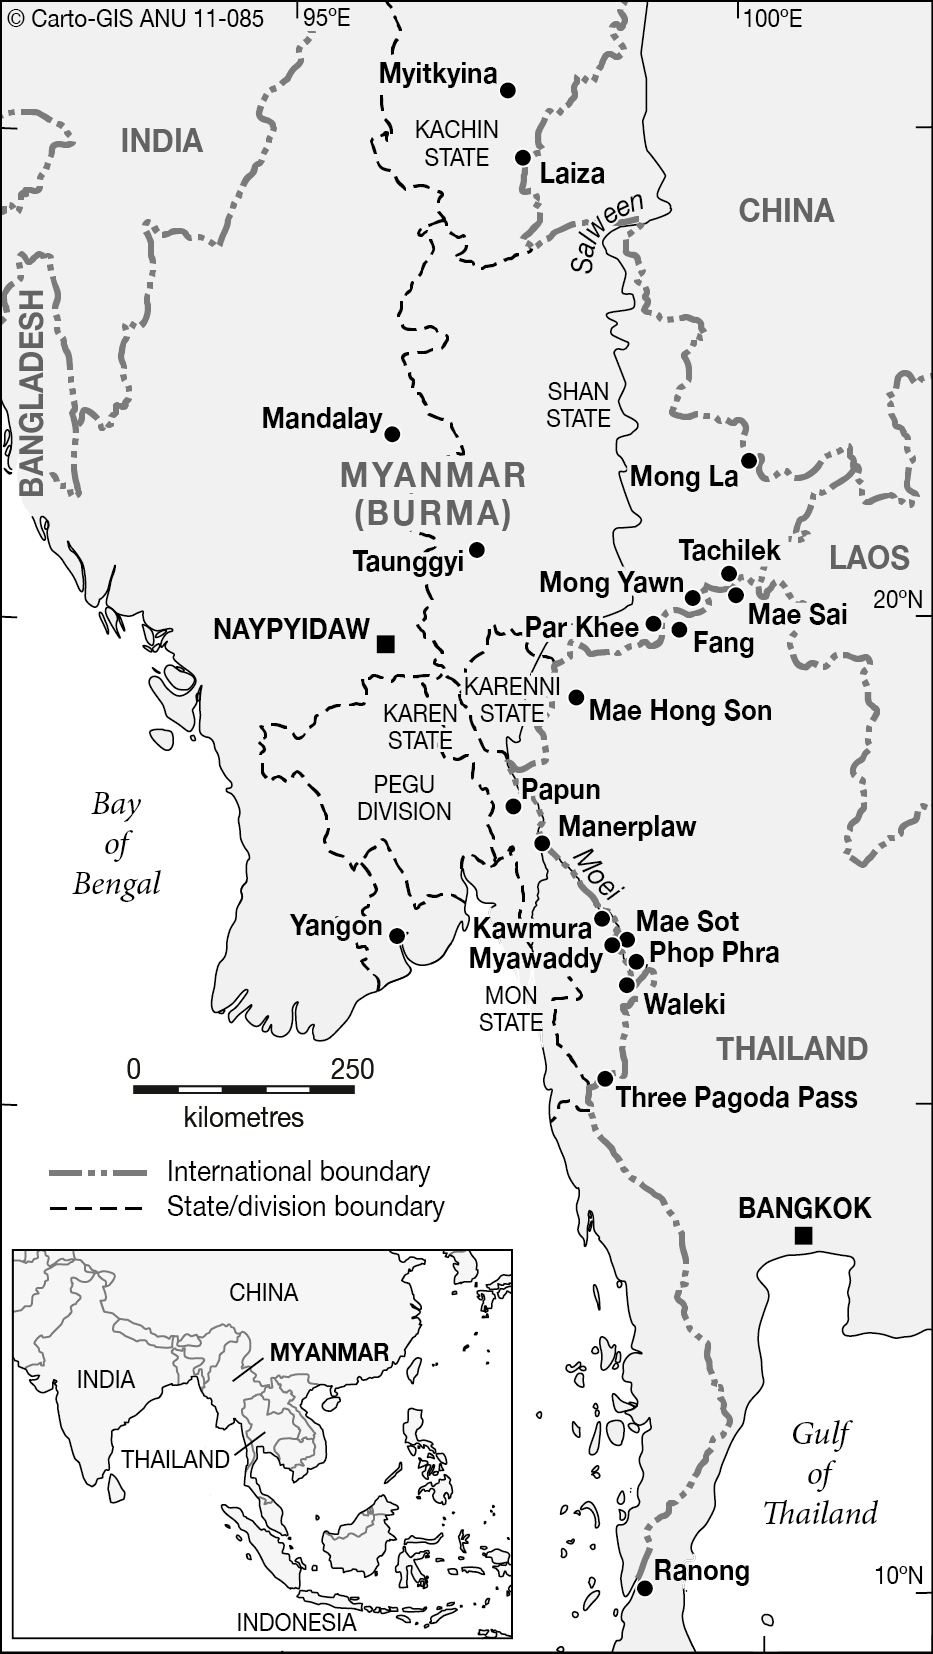 myanmar eastern states cartogis services maps online anu Hotels in Burma map